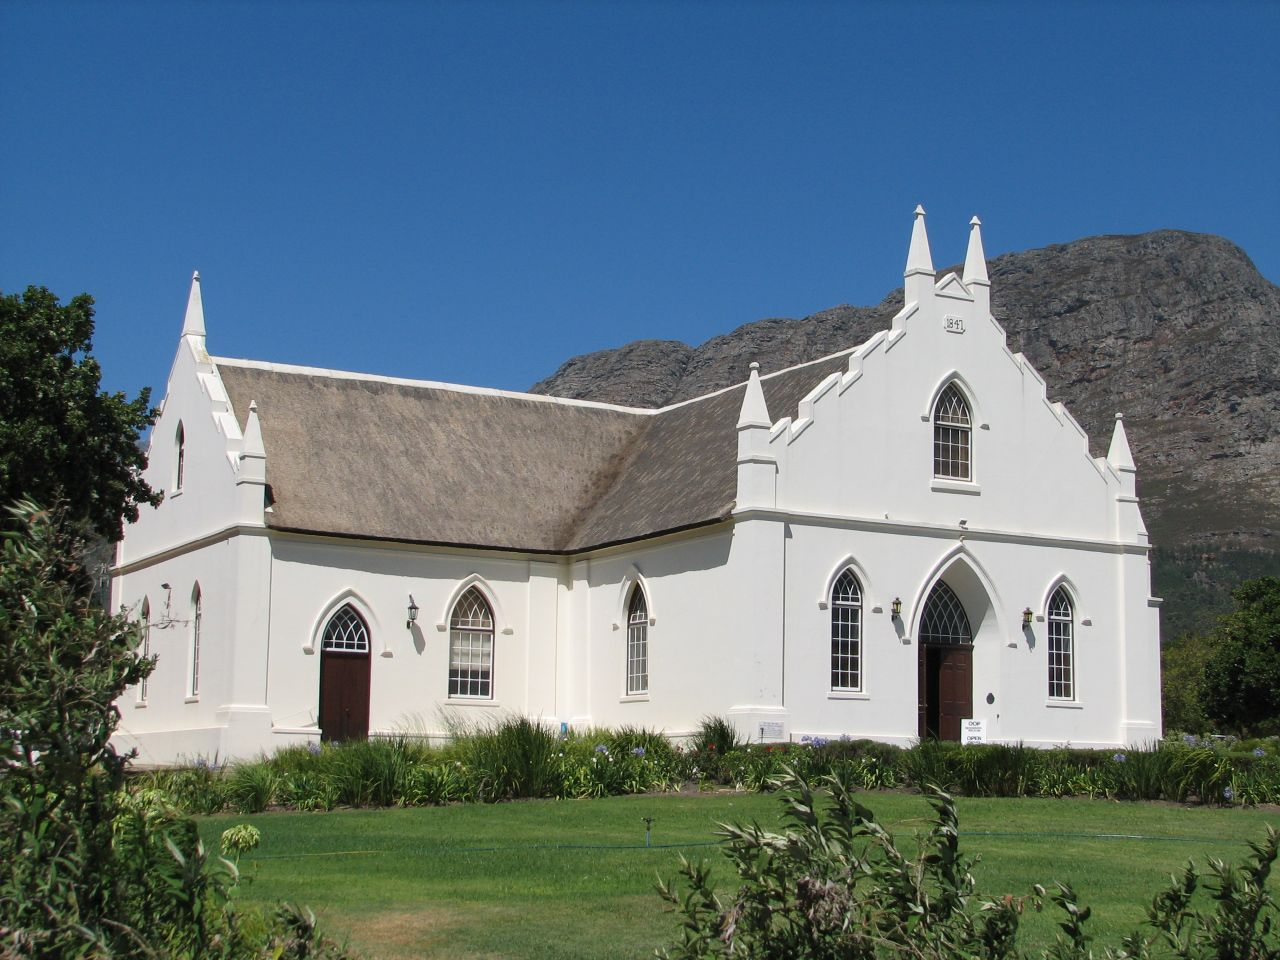 File:Dutch Reformed Church, Franschhoek, South Africa.jpg